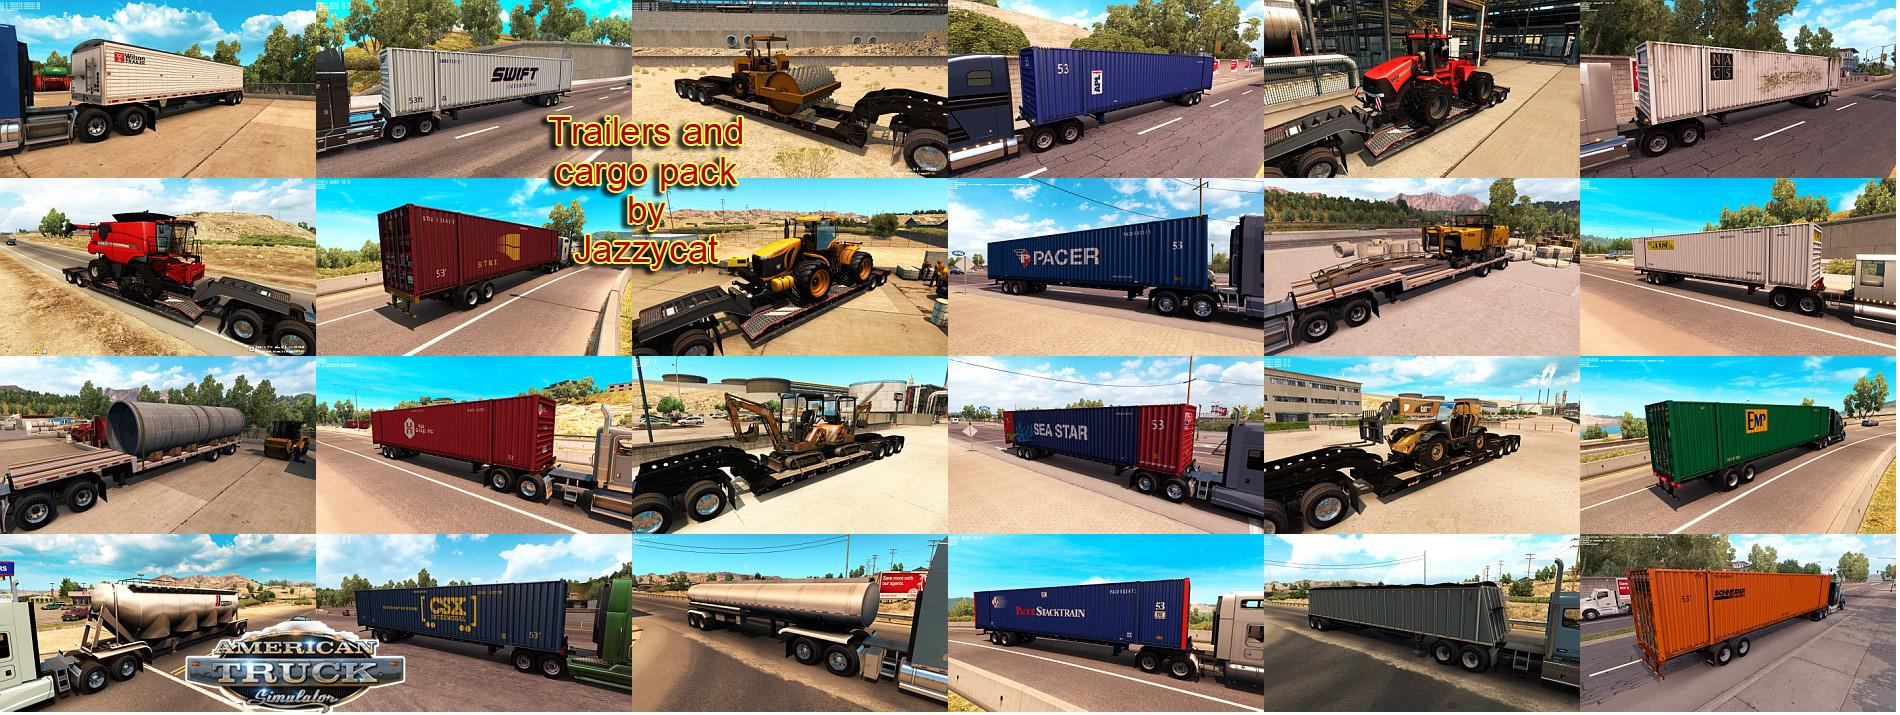 ATS Trailers and Cargo Pack v1.2 by Jazzycat